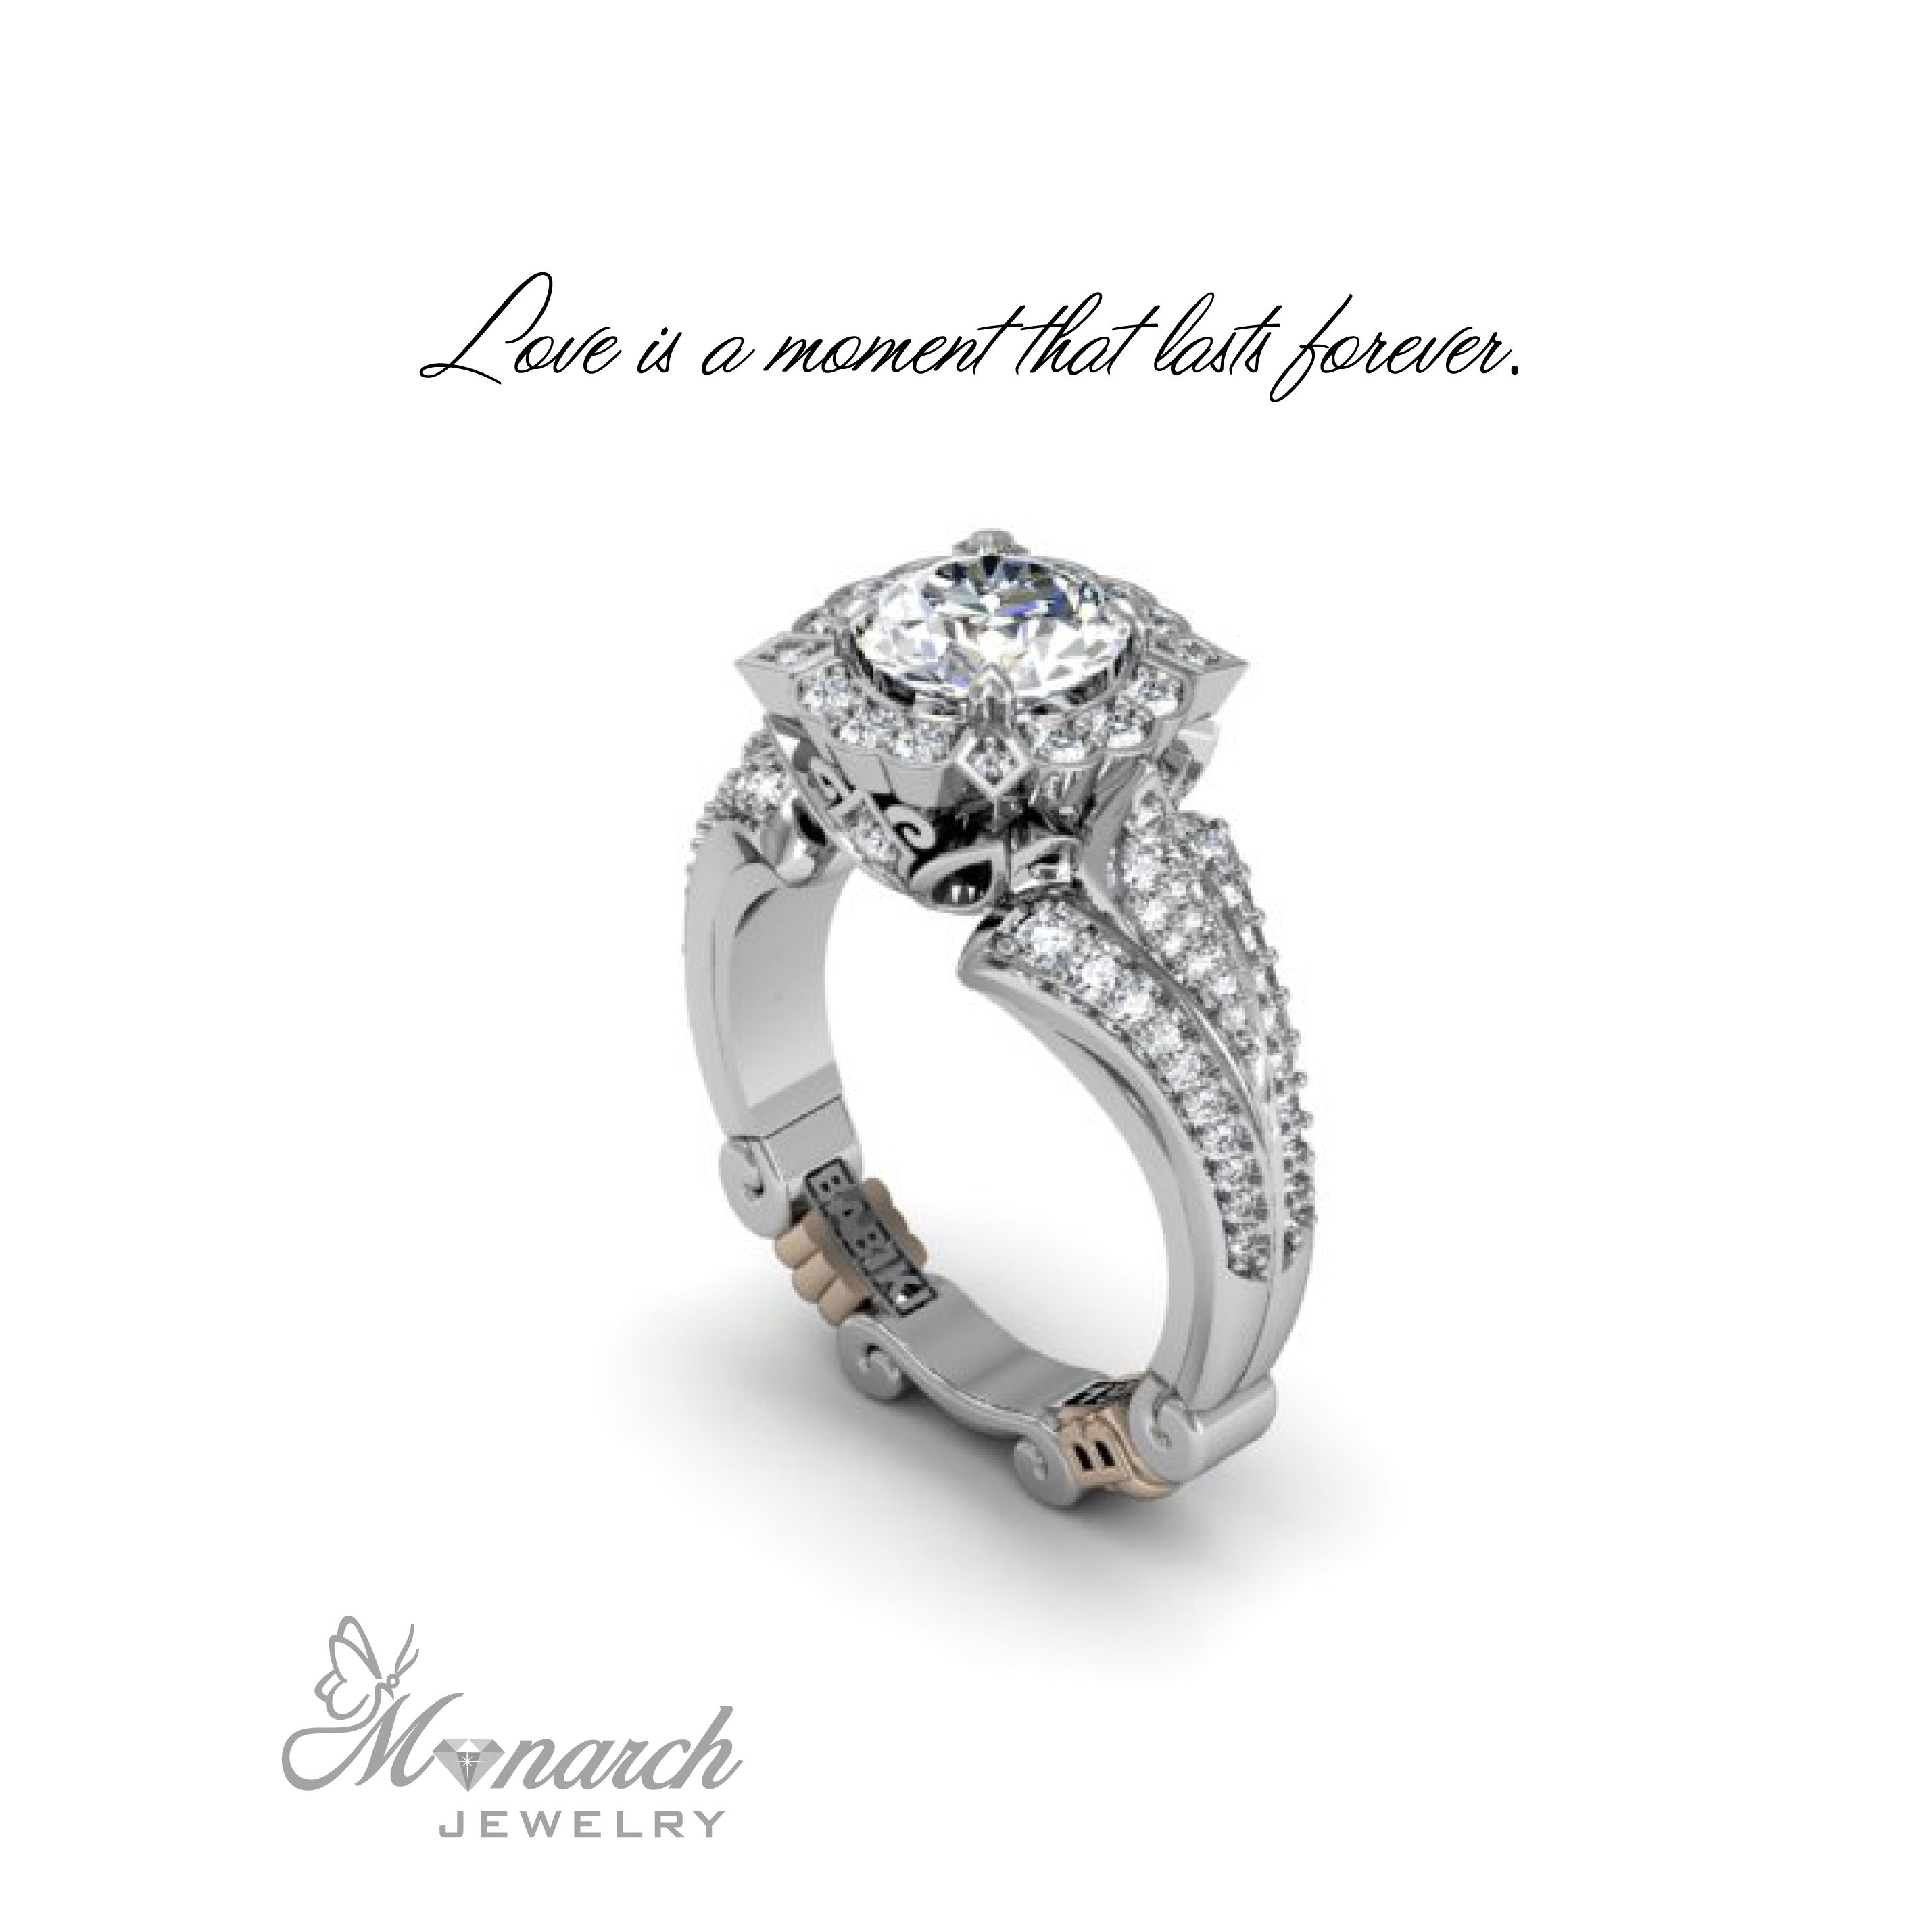 Love is a moment that lasts forever Babiki diamond engagement ring